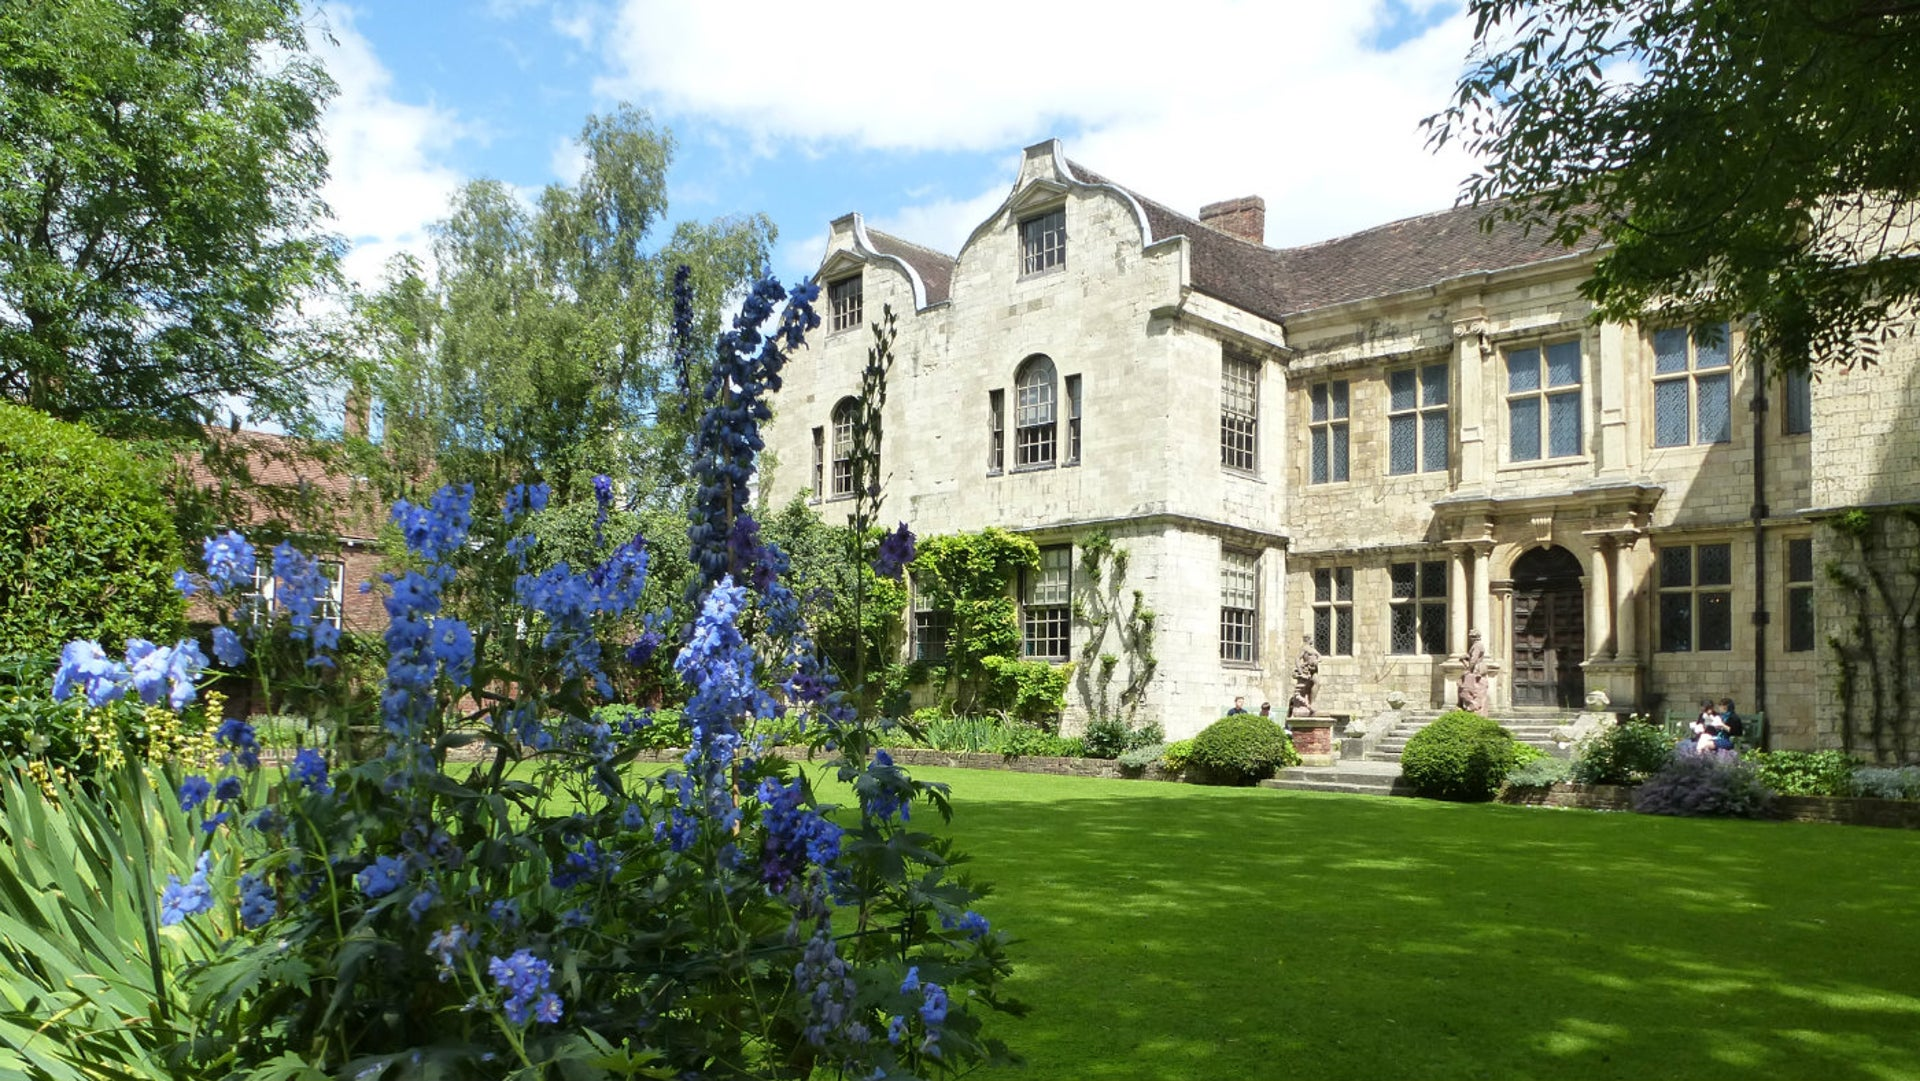 York Residents Open Day at Treasurer's House